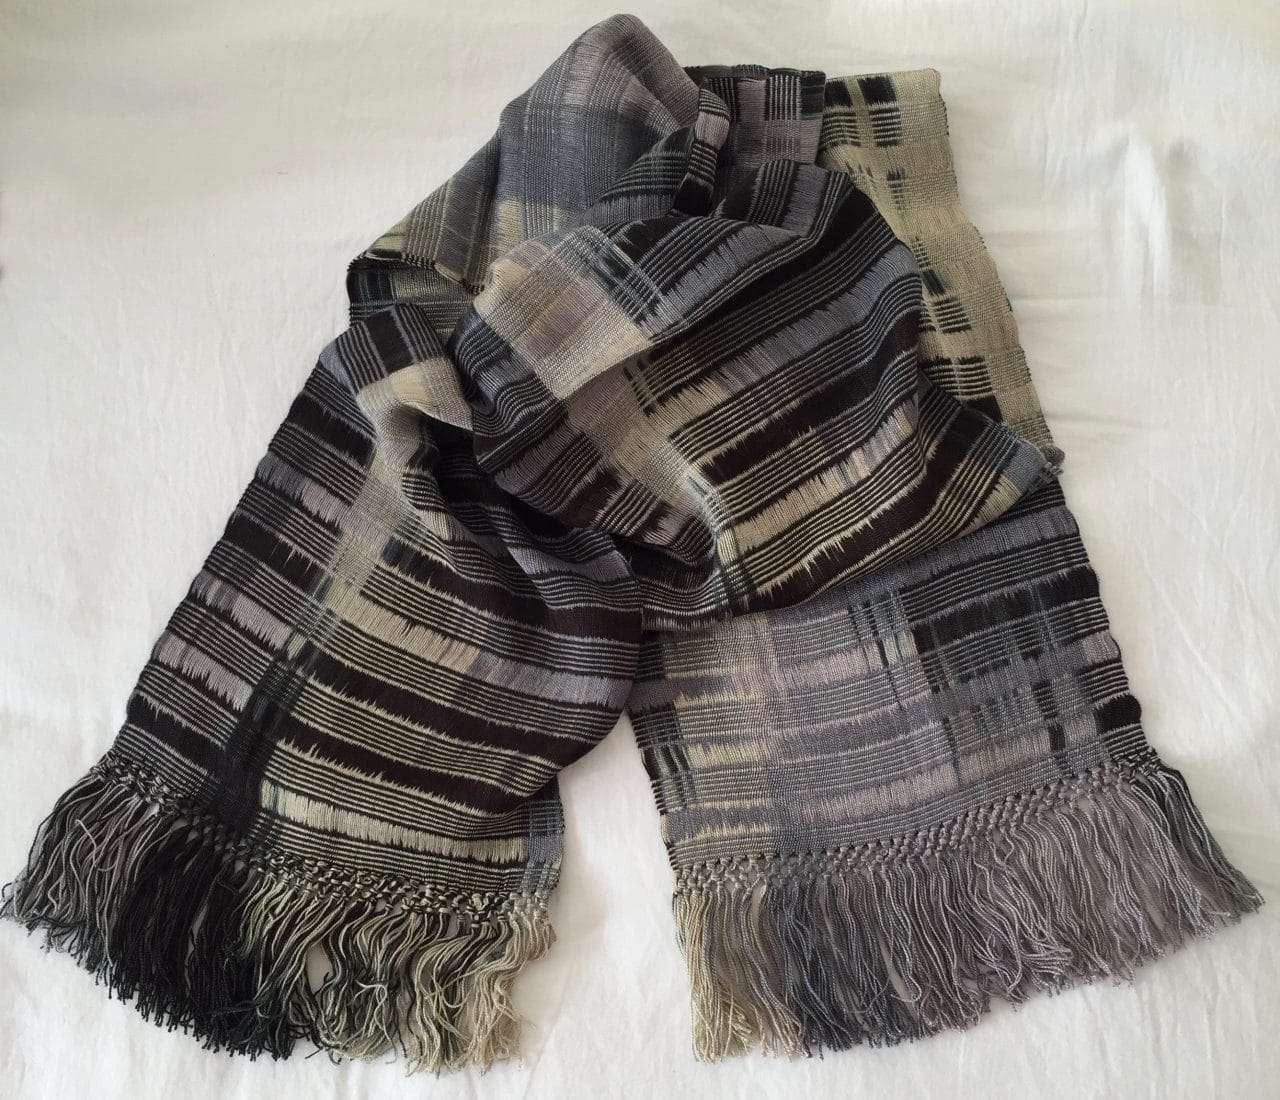 Black, Gray, Beige - Lightweight Bamboo Open-Weave Handwoven Scarf 8